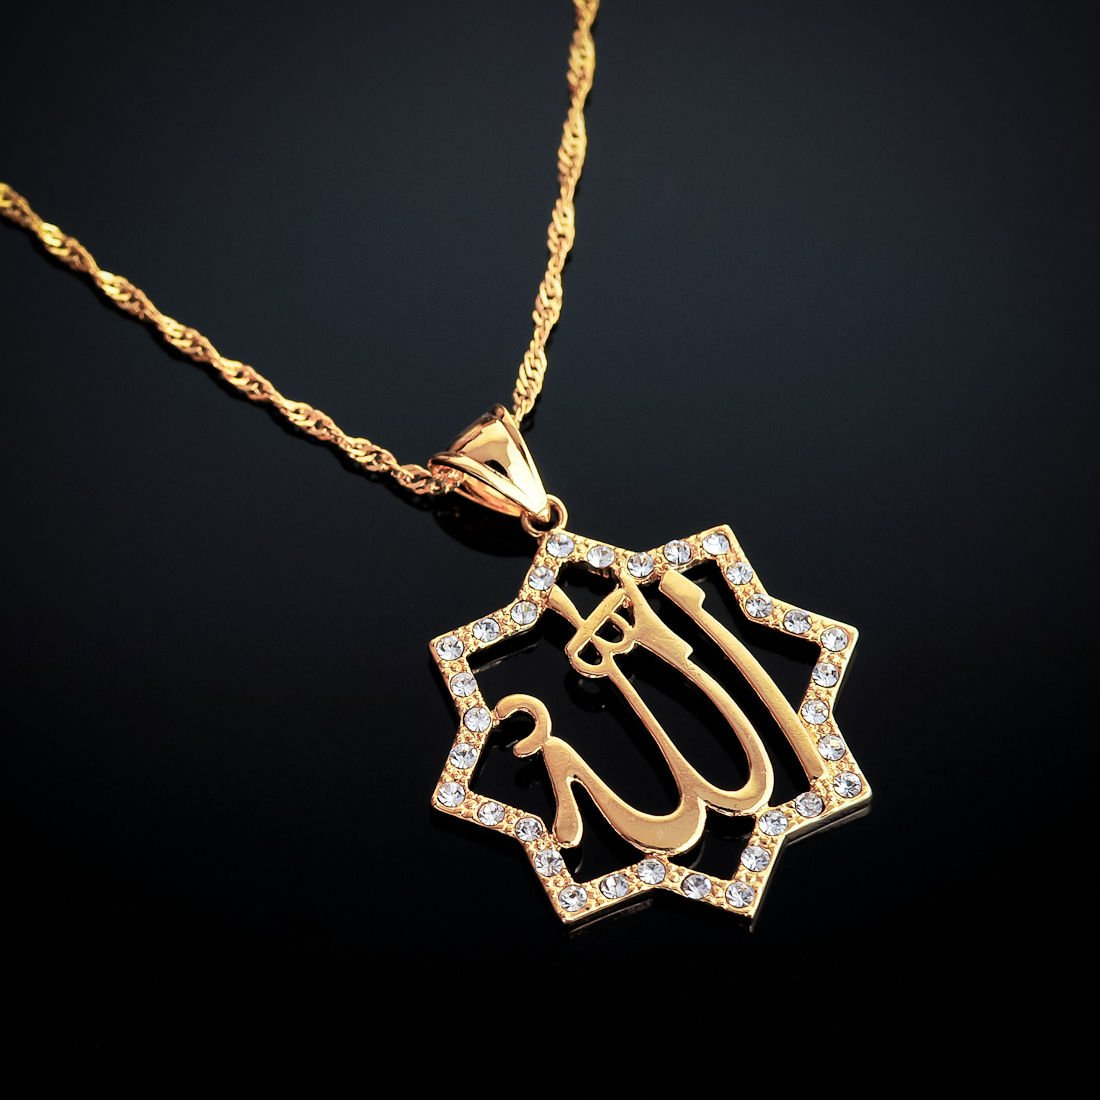 Fashion 18k gold plated Allah Islamic pendant & necklace ! Islam Jewelry & Gift